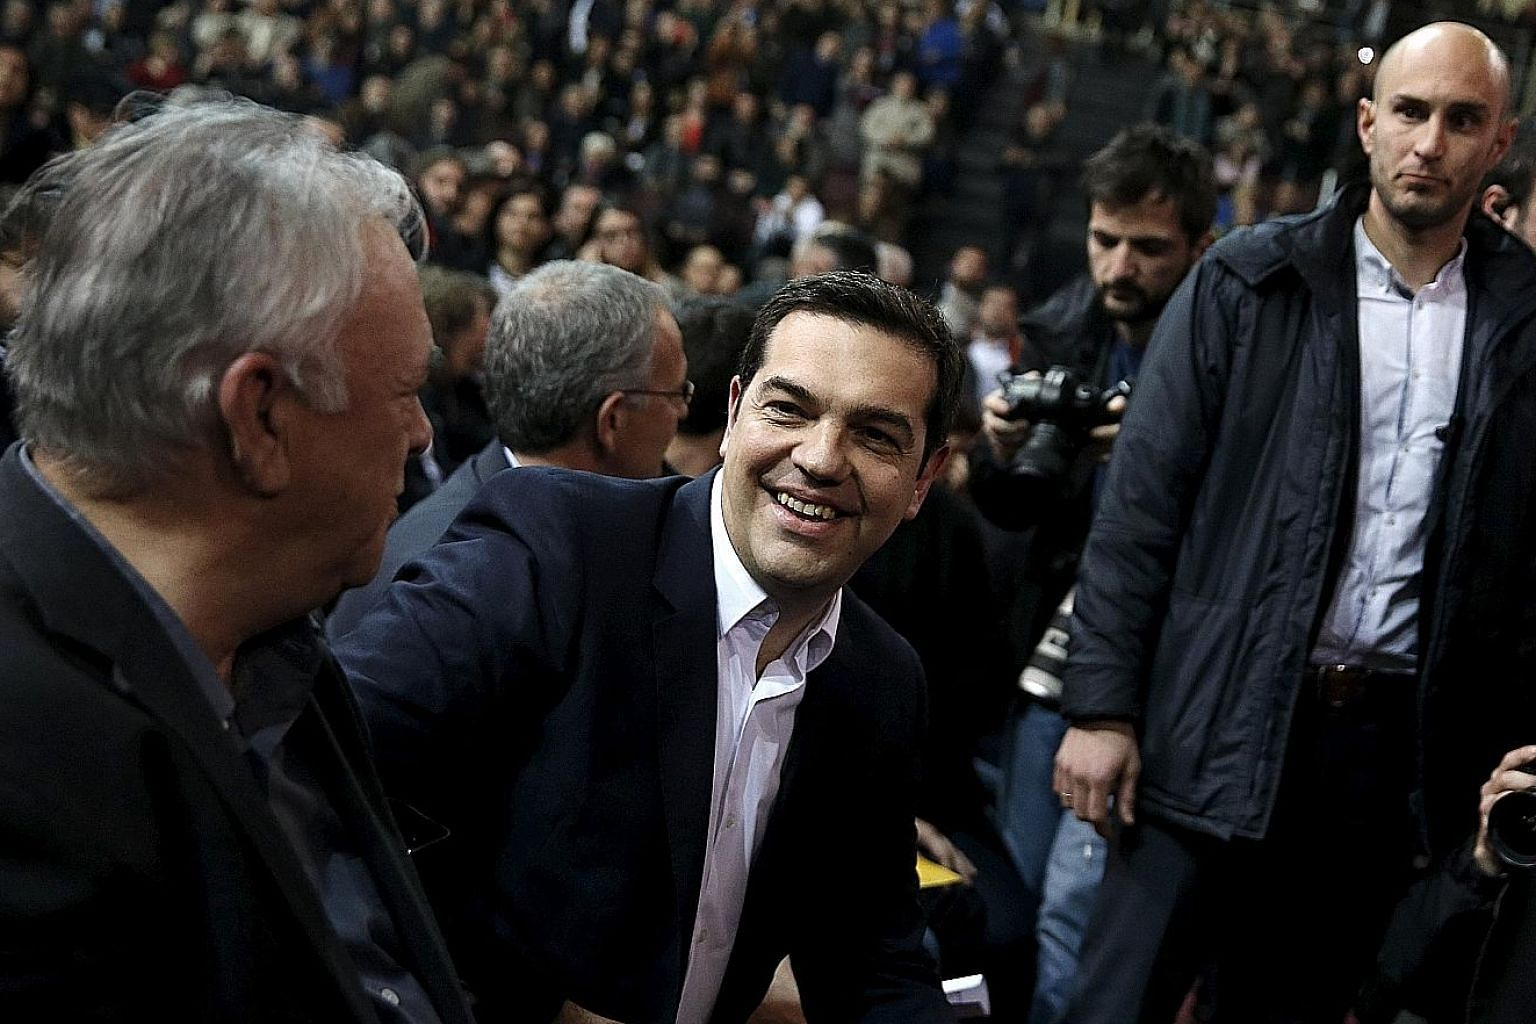 Greek Prime Minister Alexis Tsipras (centre) in a relaxed mood before making a speech to mark his first year in office in Athens. He is headed towards a showdown over Greece's social security reforms, which he wants to push through by raising contrib